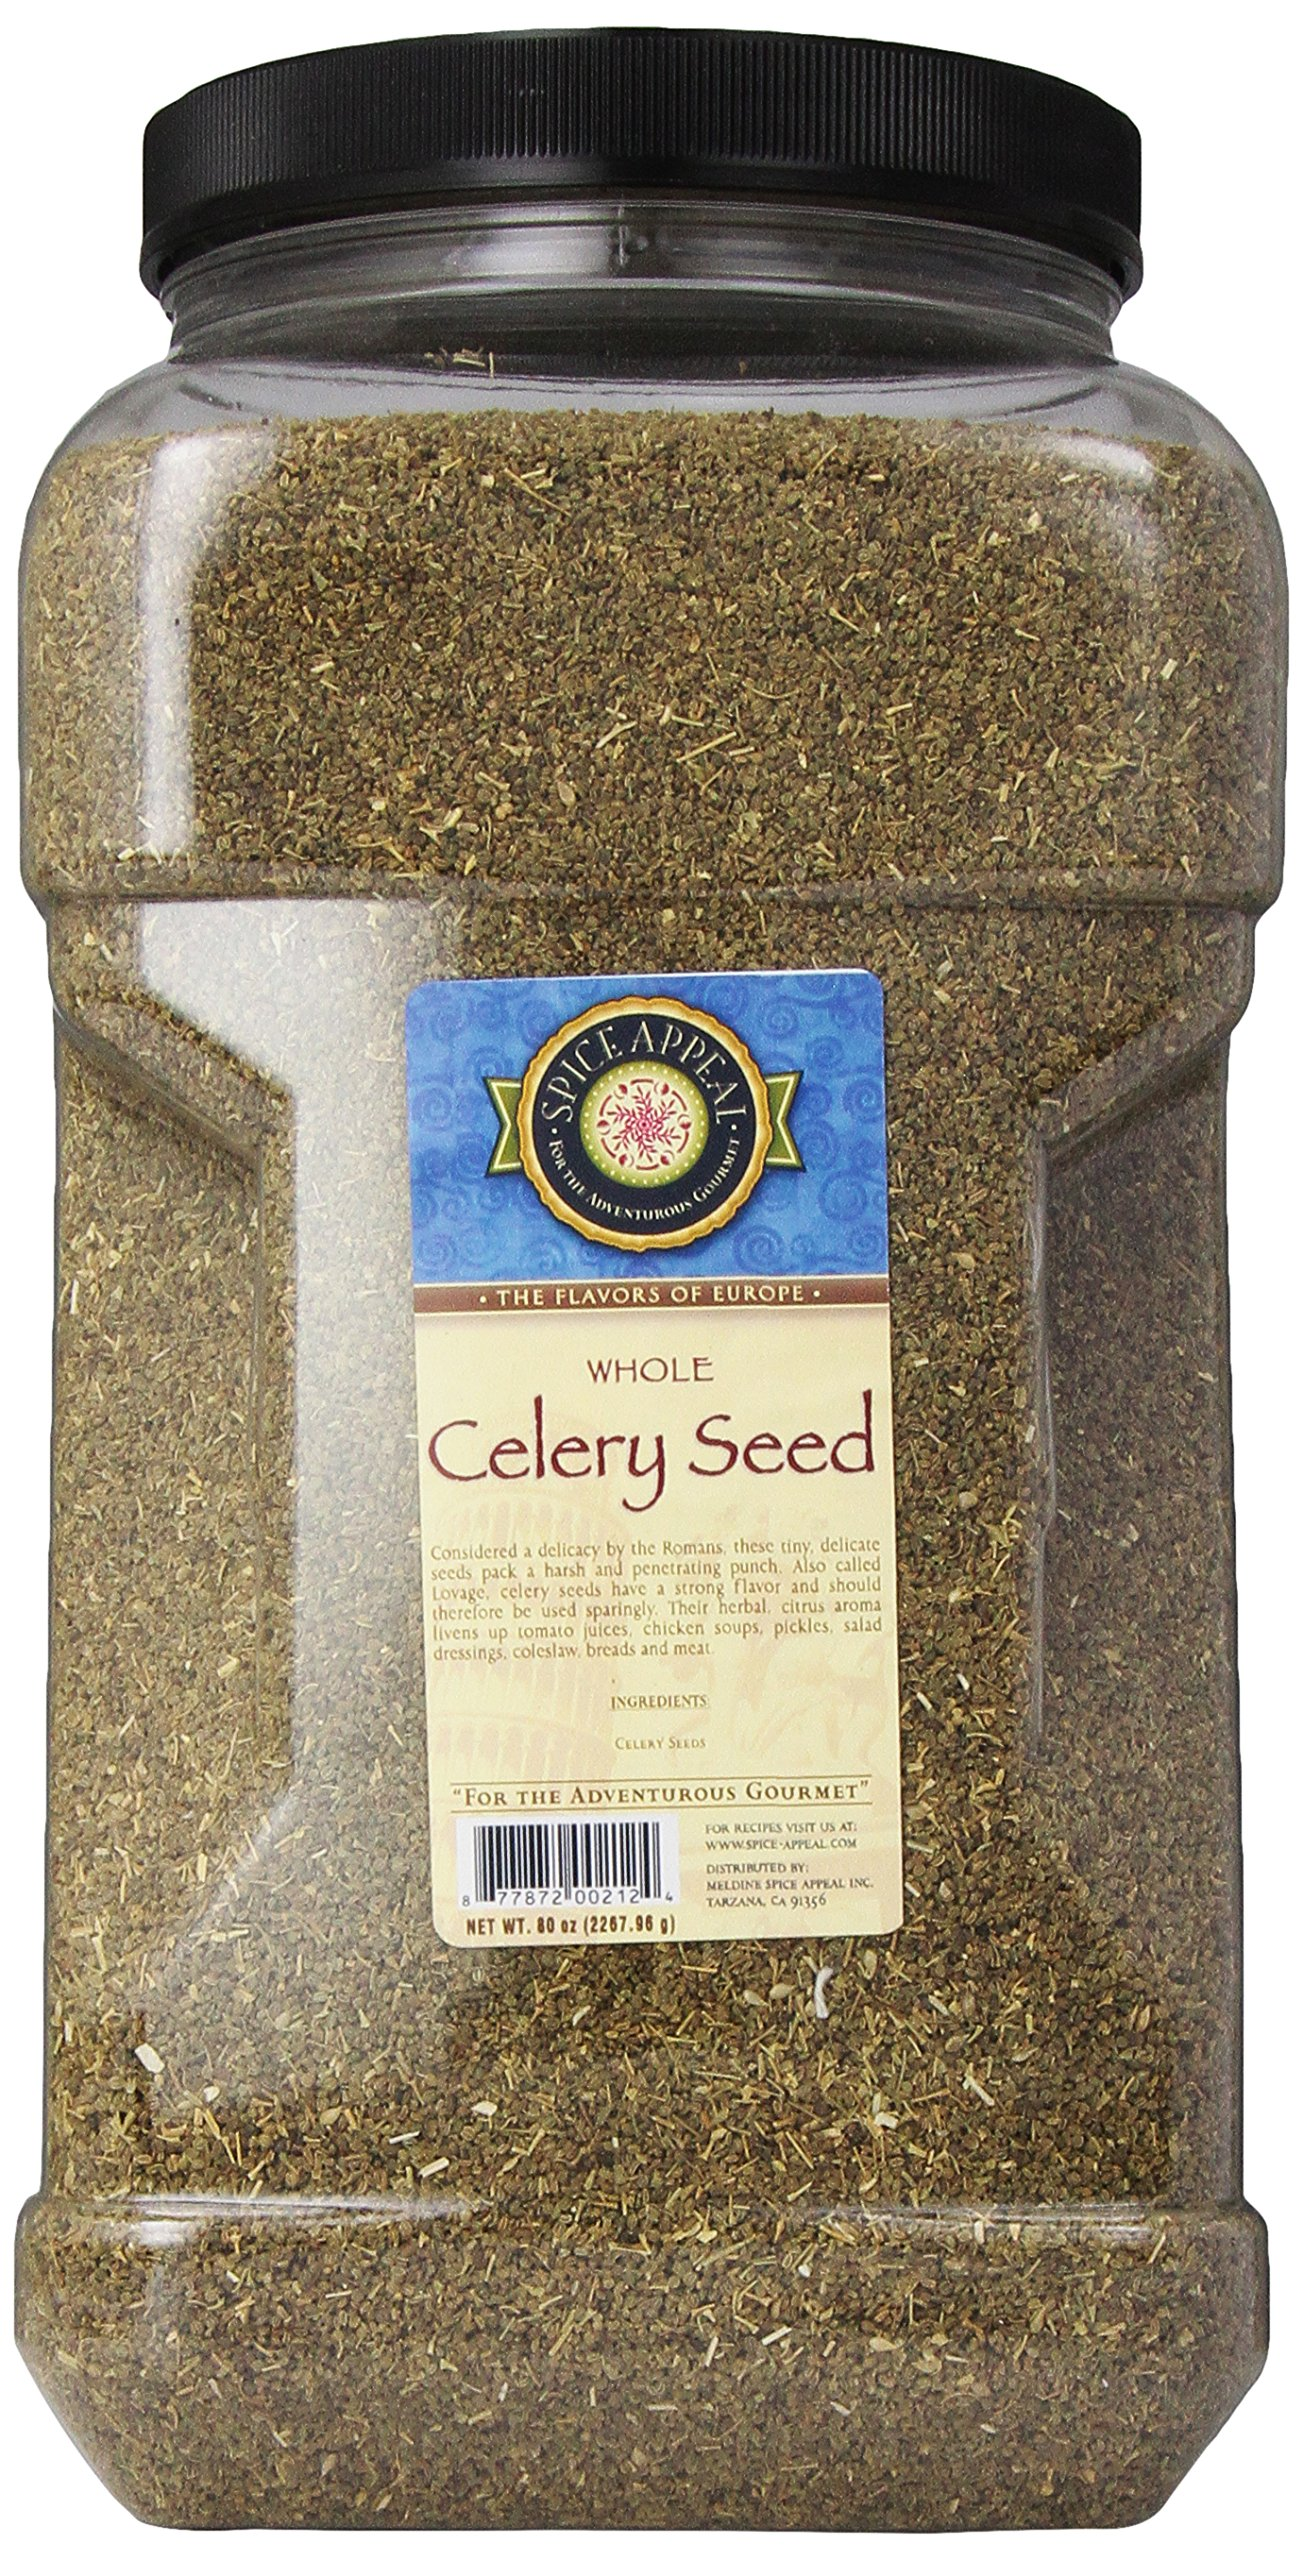 Spice Appeal Celery Seed Whole, 5 lbs